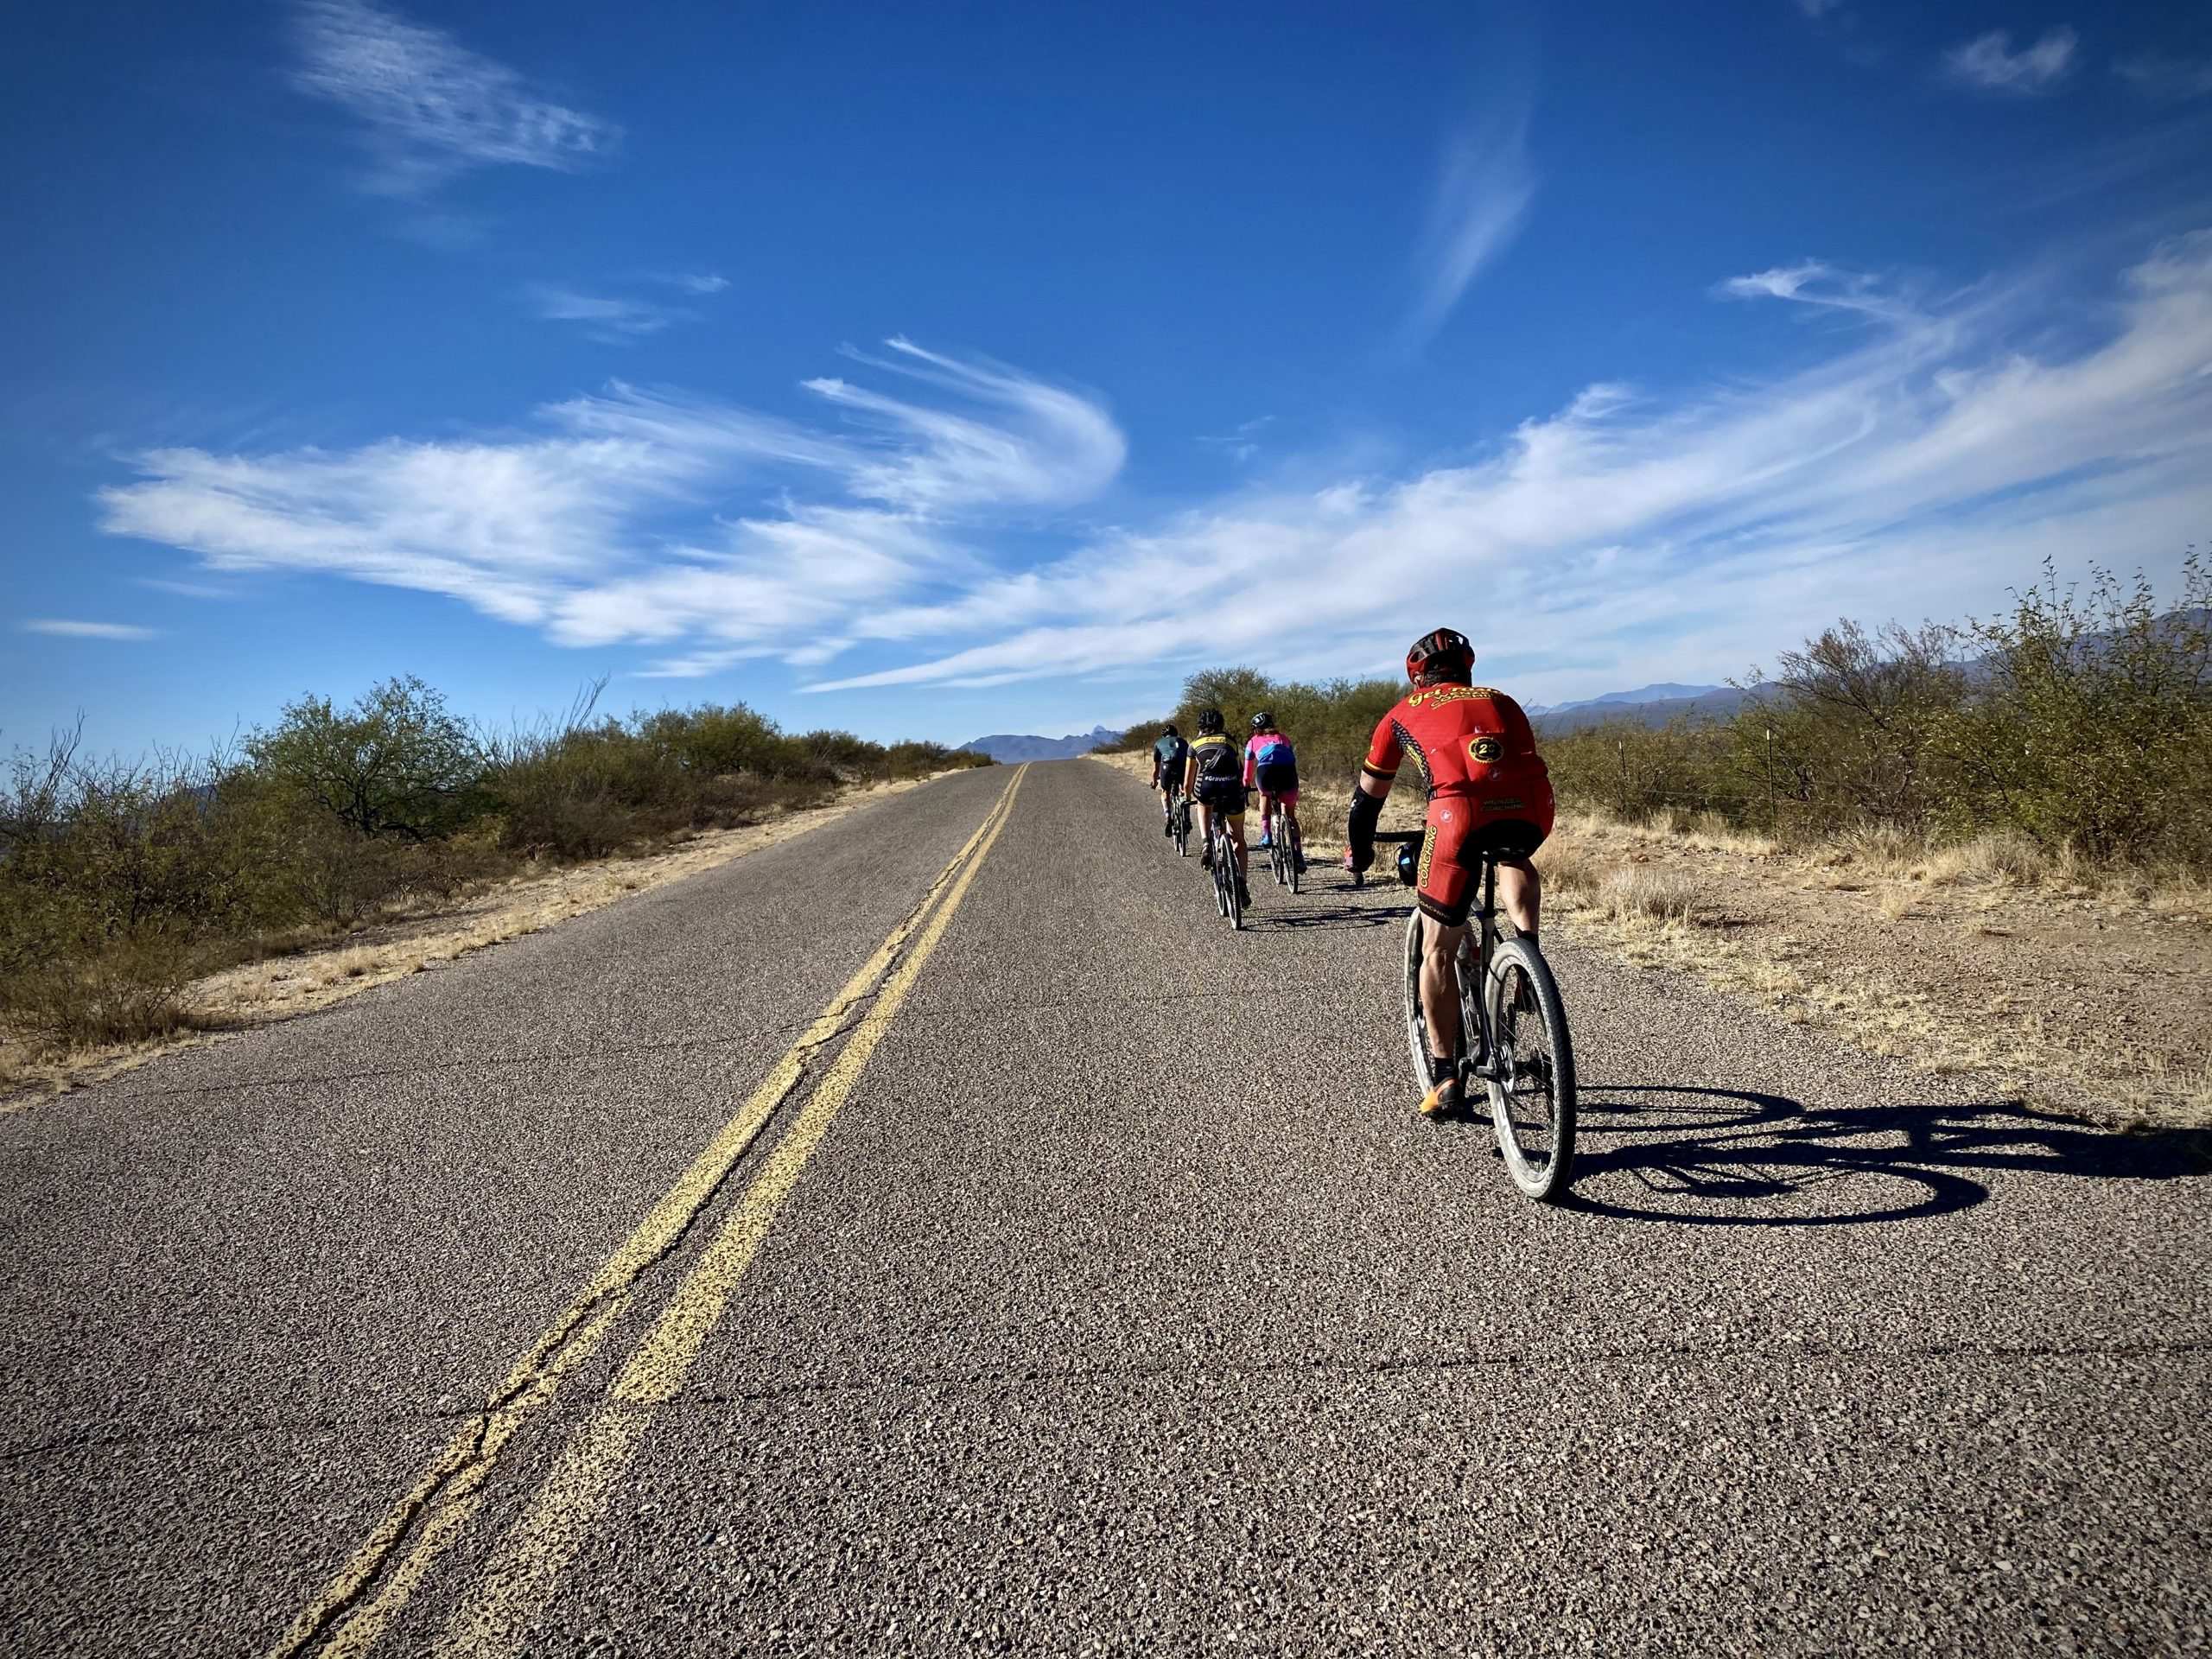 A group of cyclists riding single file downhill near the Whipple Observatory Visitors Center.